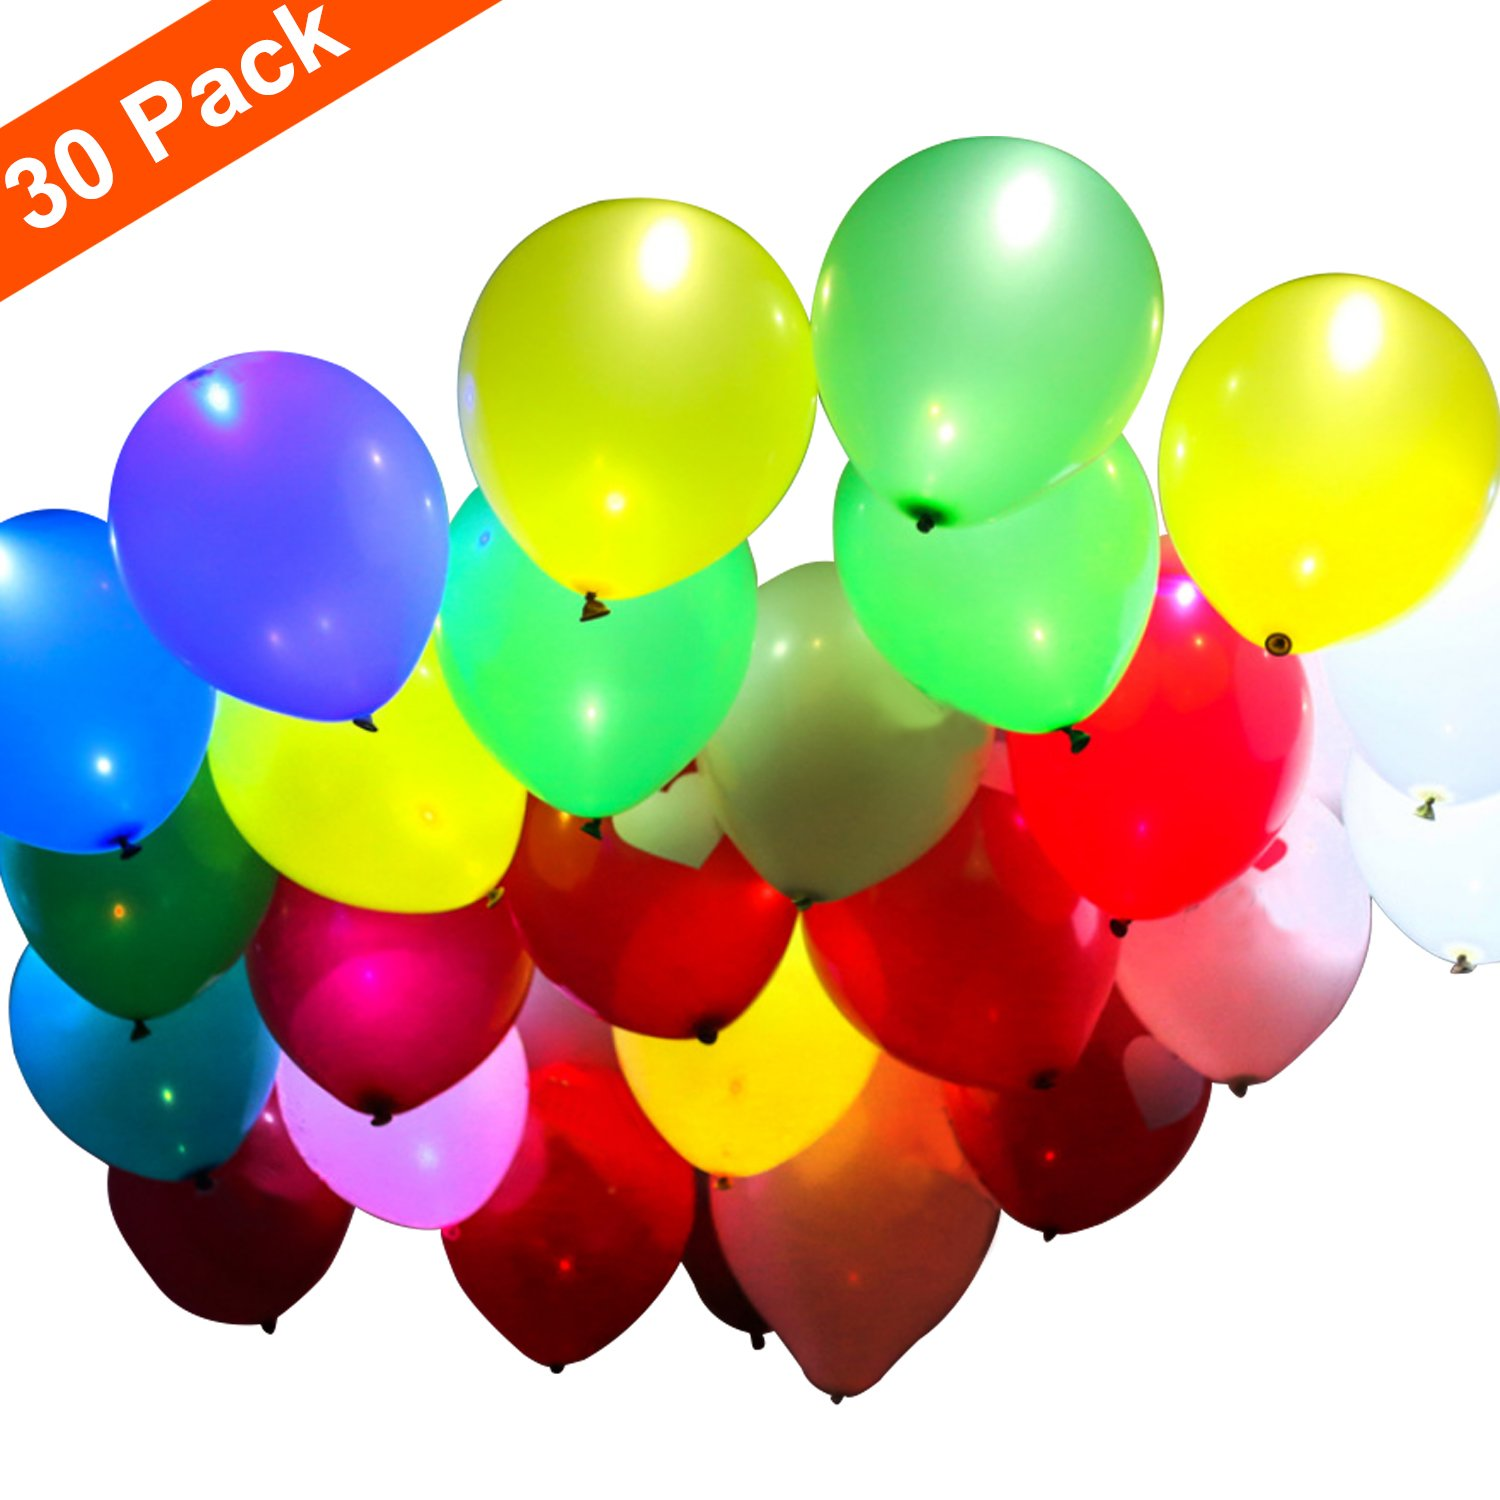 Party LED Balloons, Mixed Colors 12 inches Lights Glowing Balloons Decoration Luminous Balloons Flashing Light, Able to Fill with Helium (30-Pack)